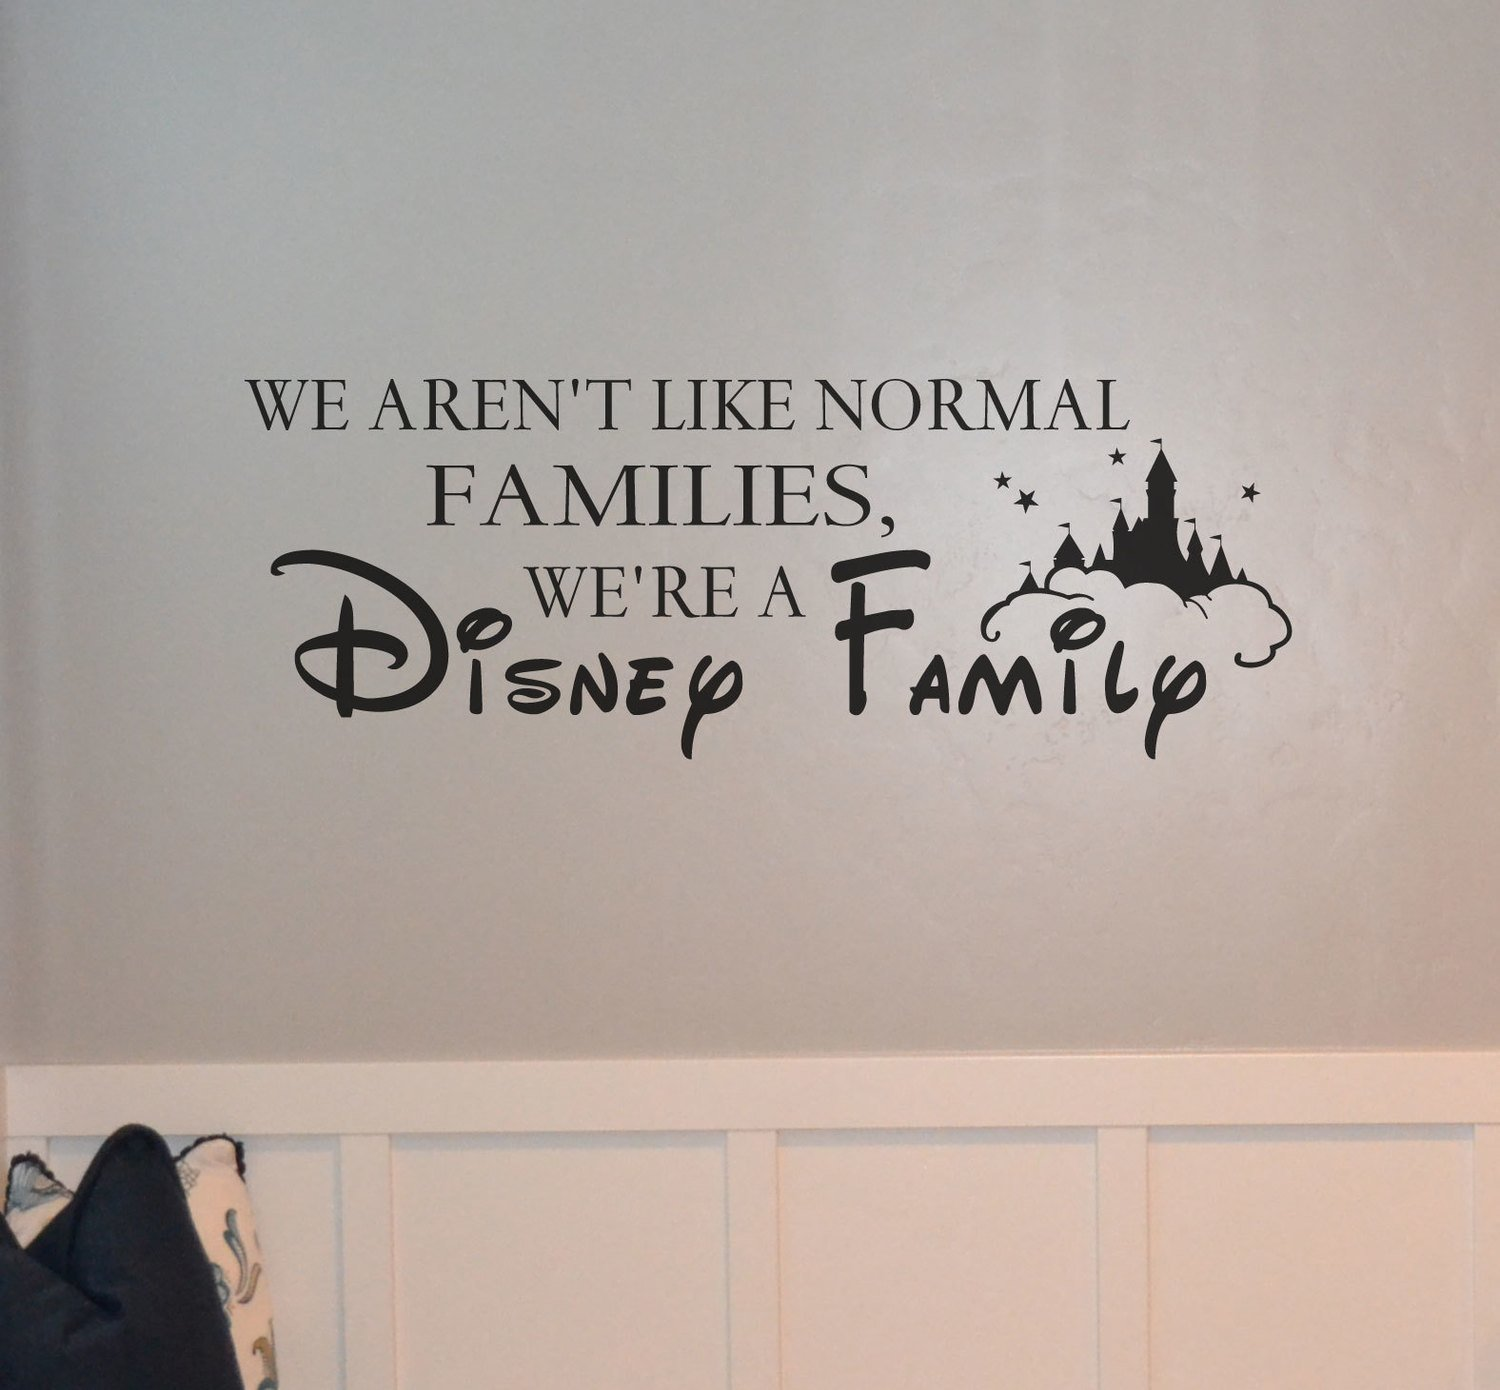 We aren't like normal families, we're a Disney family BC793